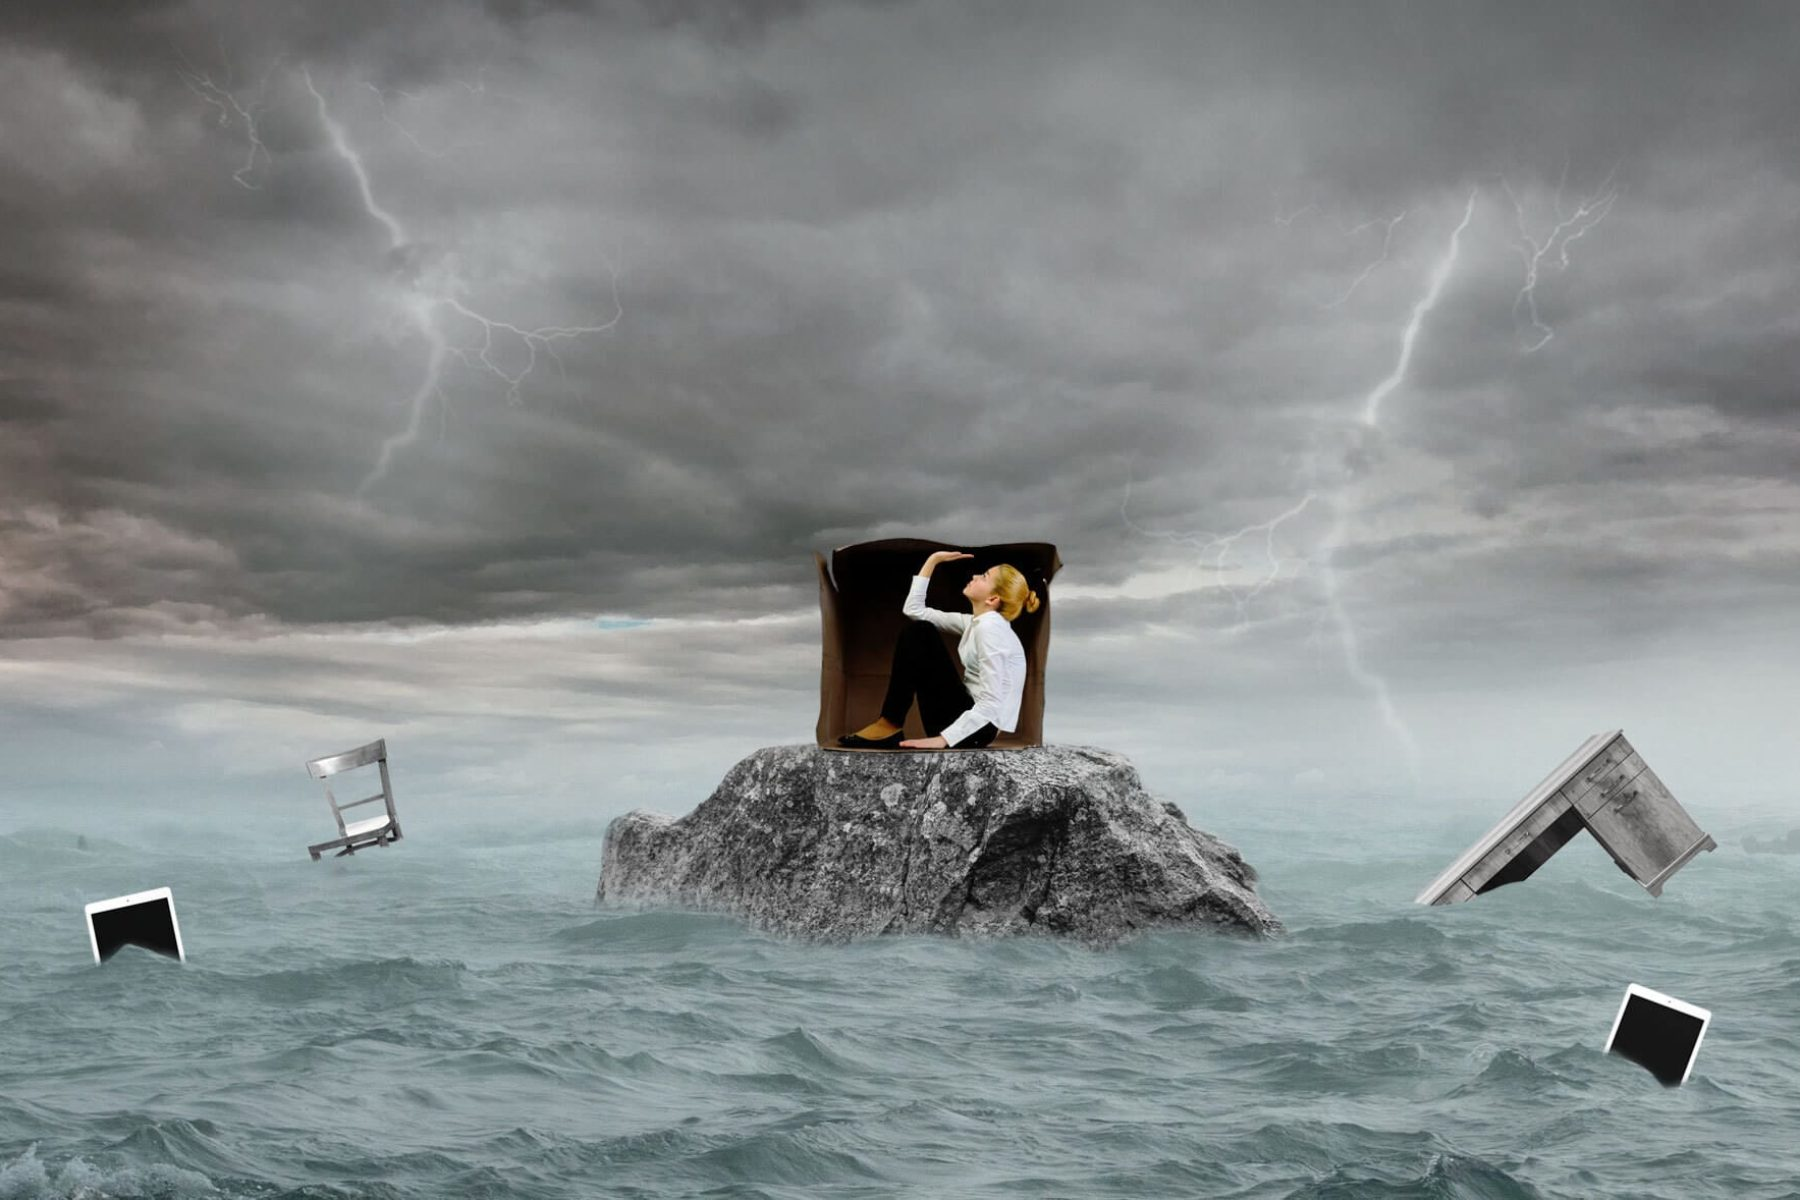 A composite illustration of a woman trapped in a box with stormy seas surrounding her.